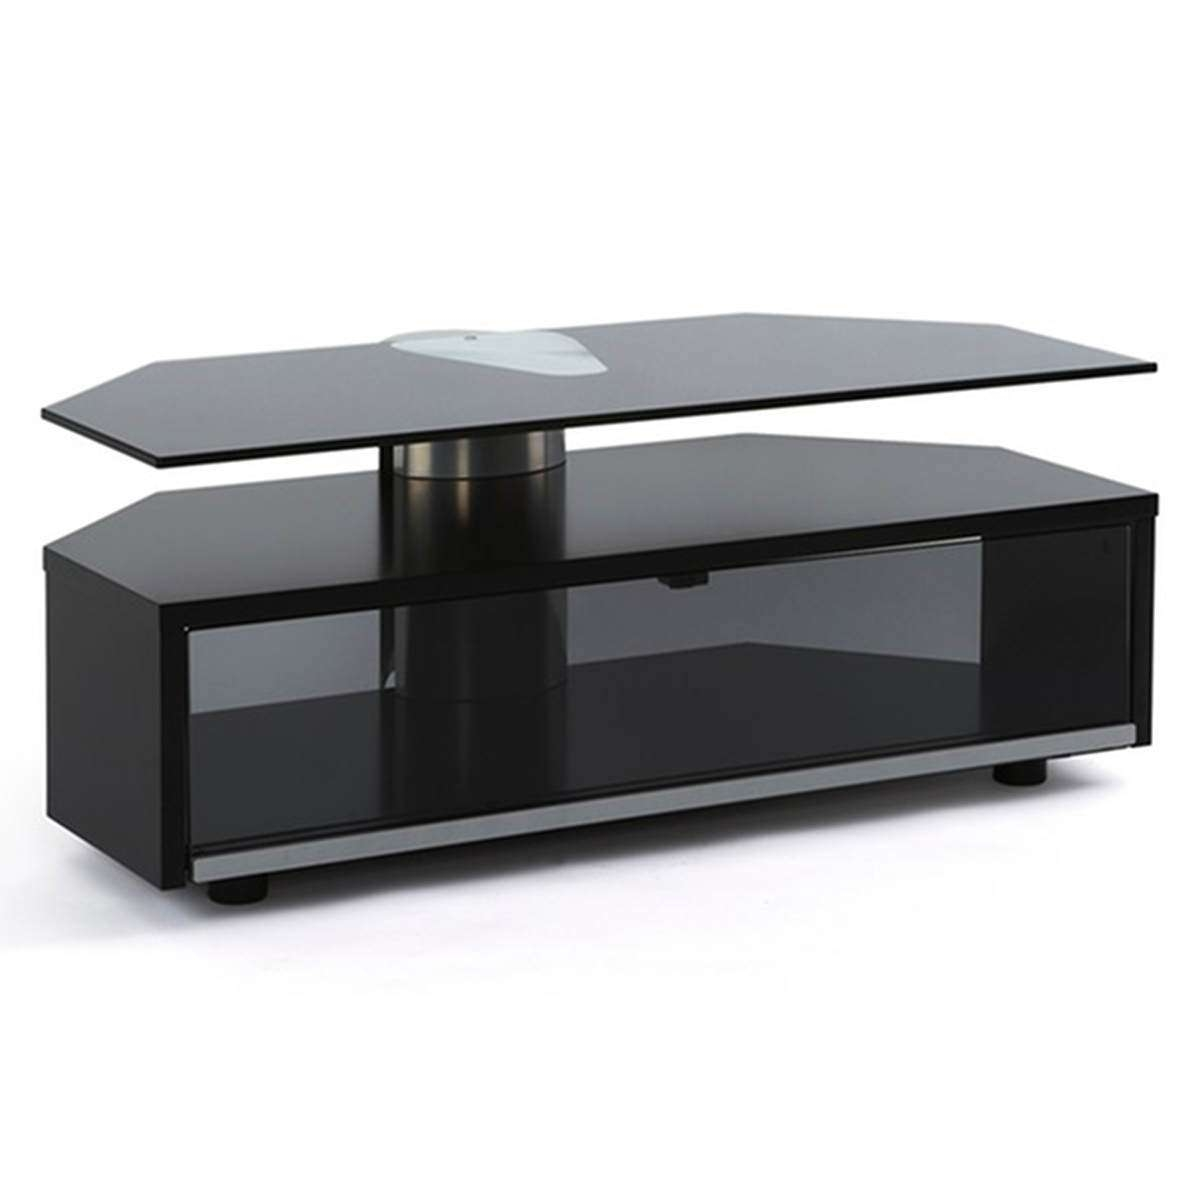 Off The Wall Duo Glass Fronted Tv Cabinet Stand 1000Mm Black Within Glass Fronted Tv Cabinets (Gallery 20 of 20)